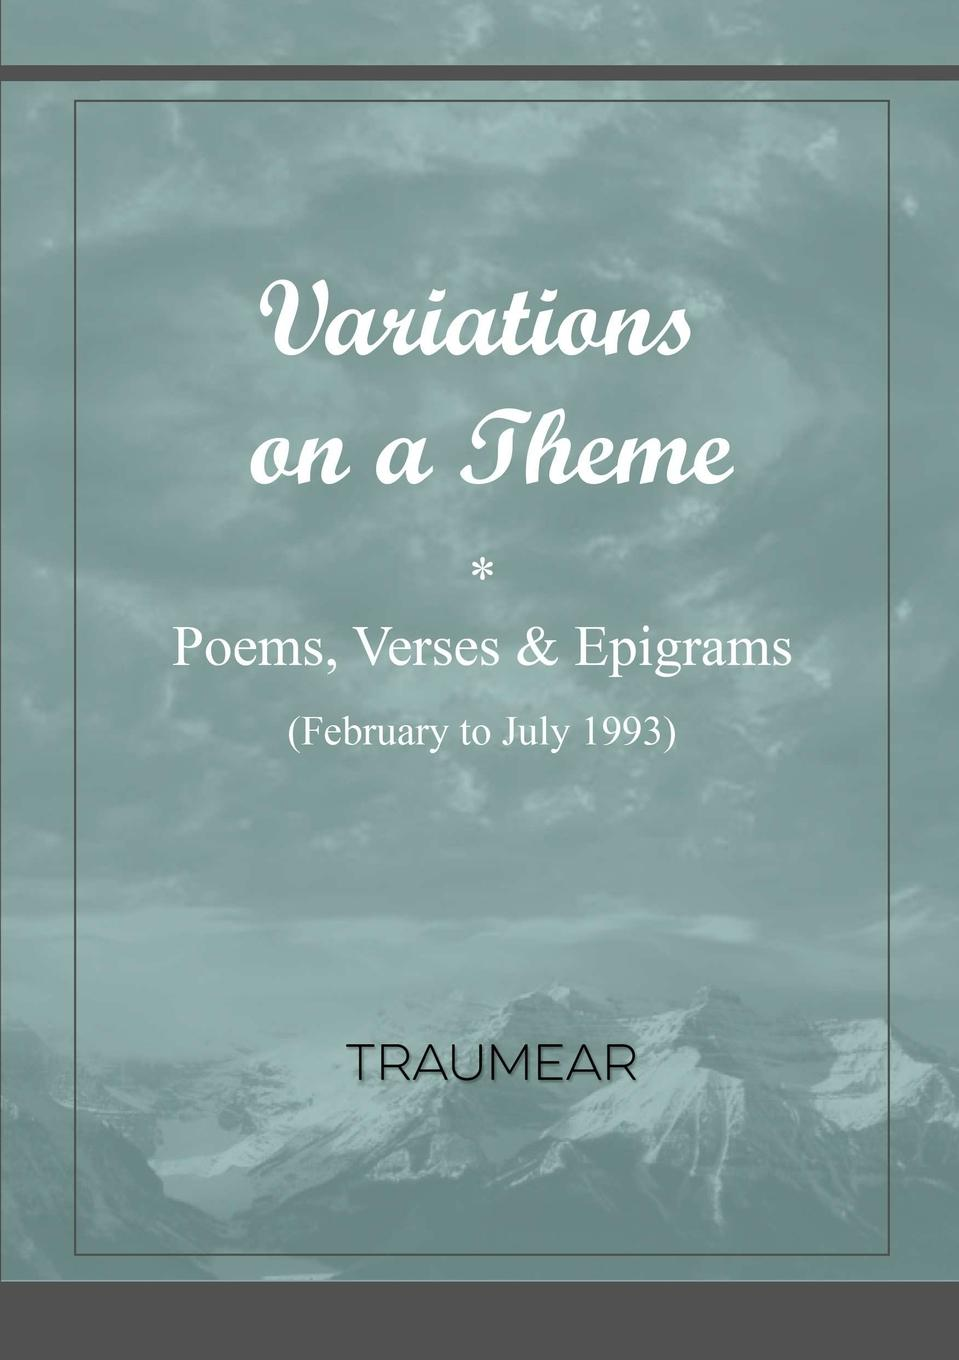 Traumear Variations on a Theme a cockney catullus